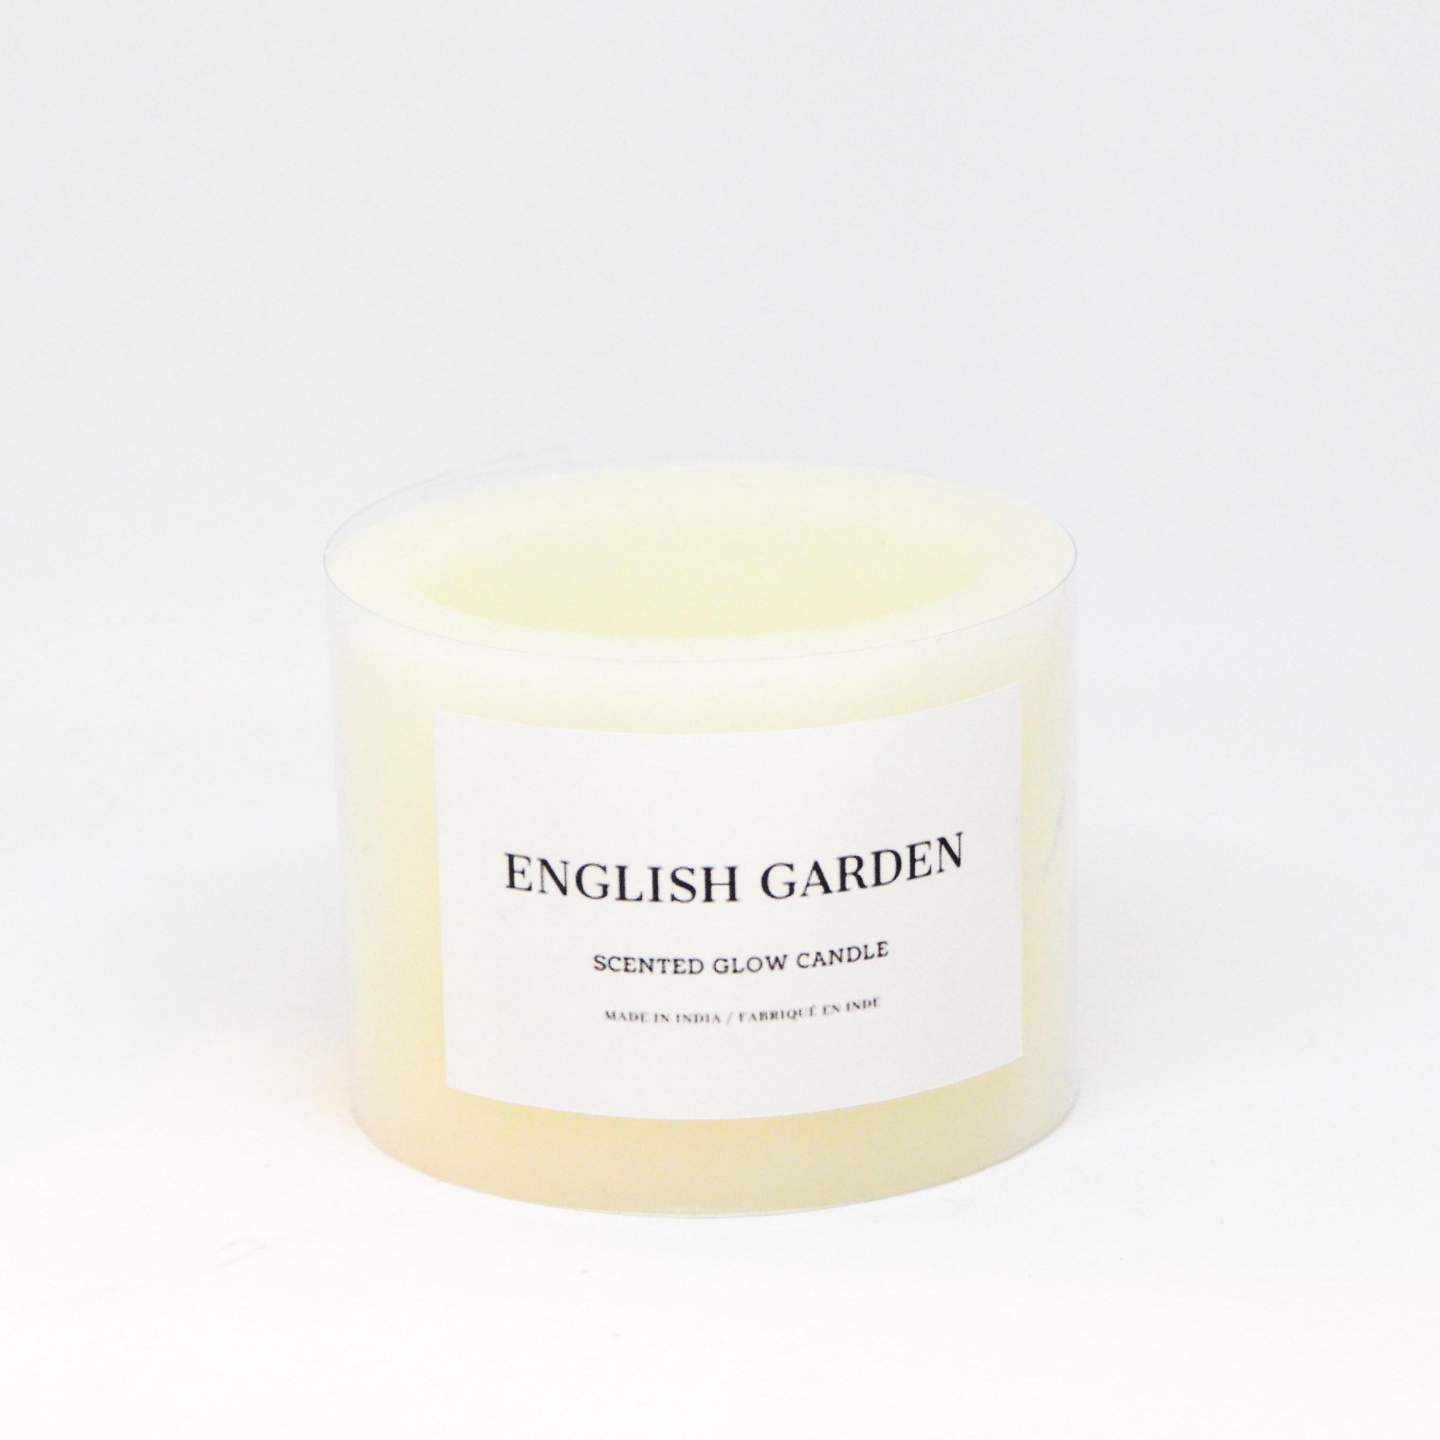 Scented Glow Candle - English Garden